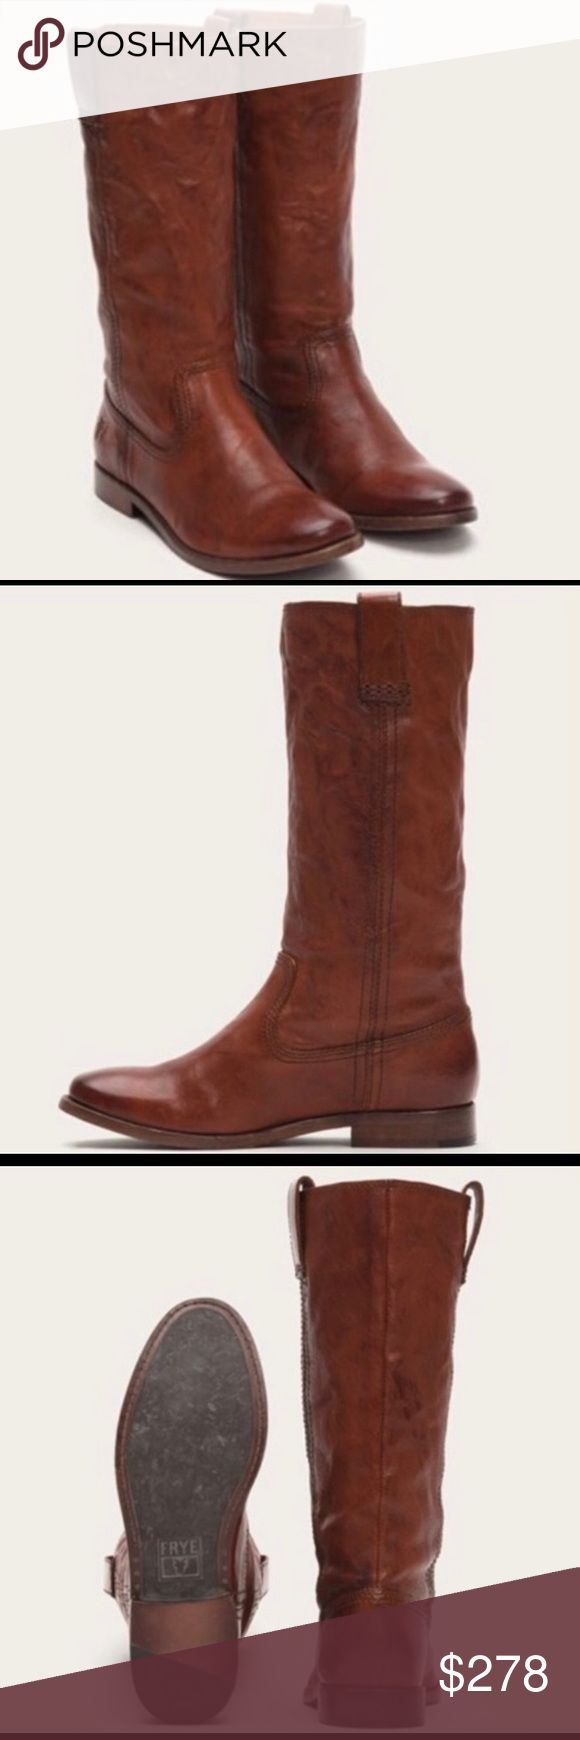 Frye anna mid pull on boots cognac size 9